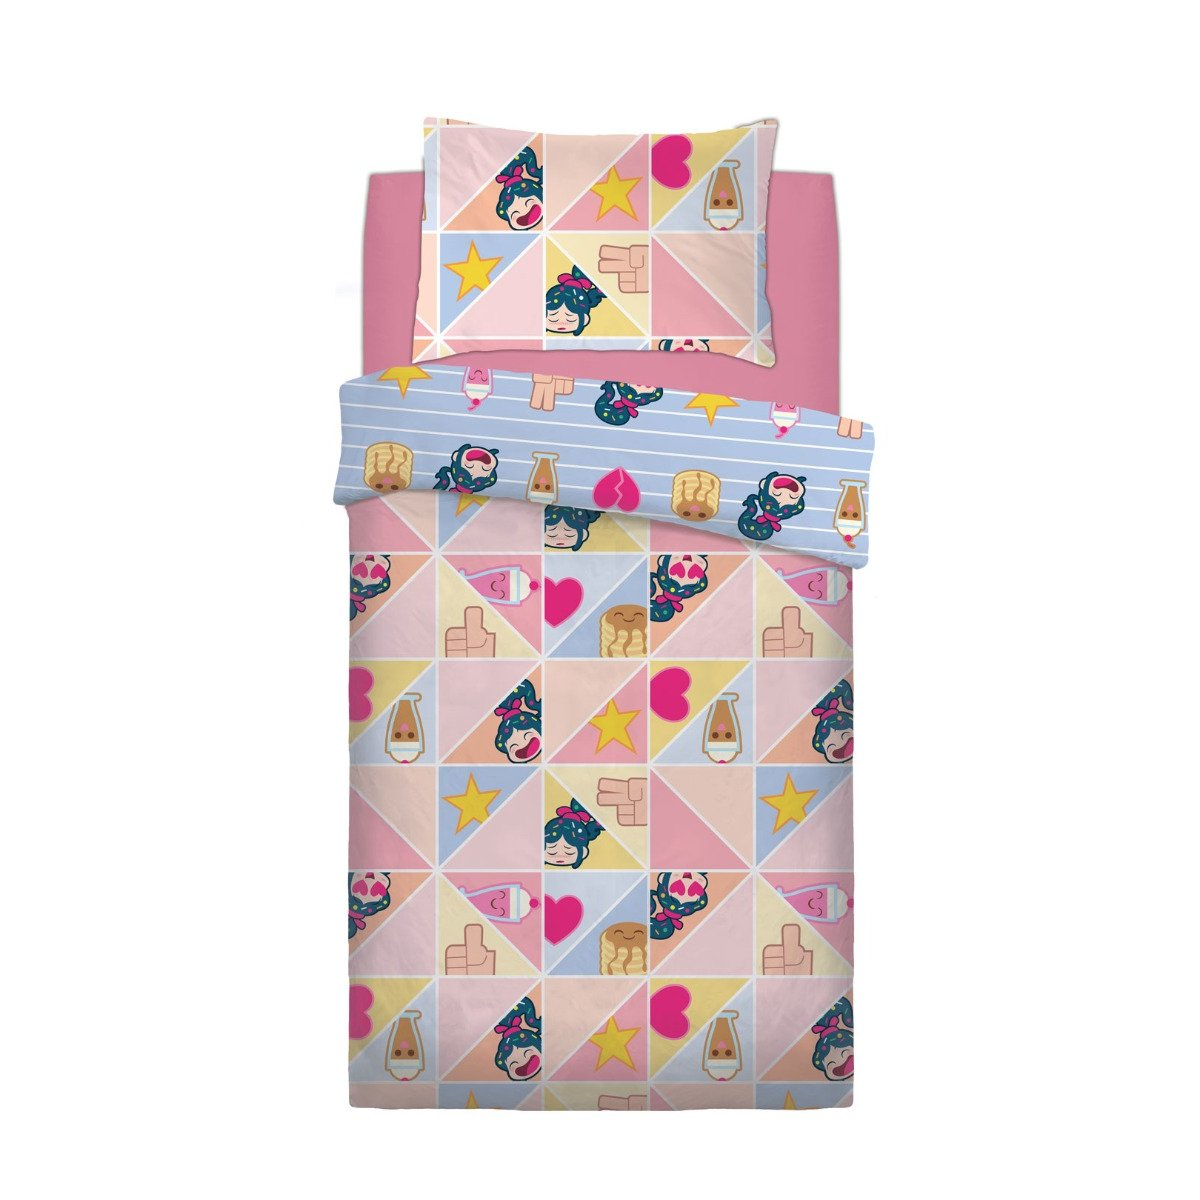 Wreck It Ralph Prismatic Bedding - Reversible Duvet Cover and Pillowcase Set